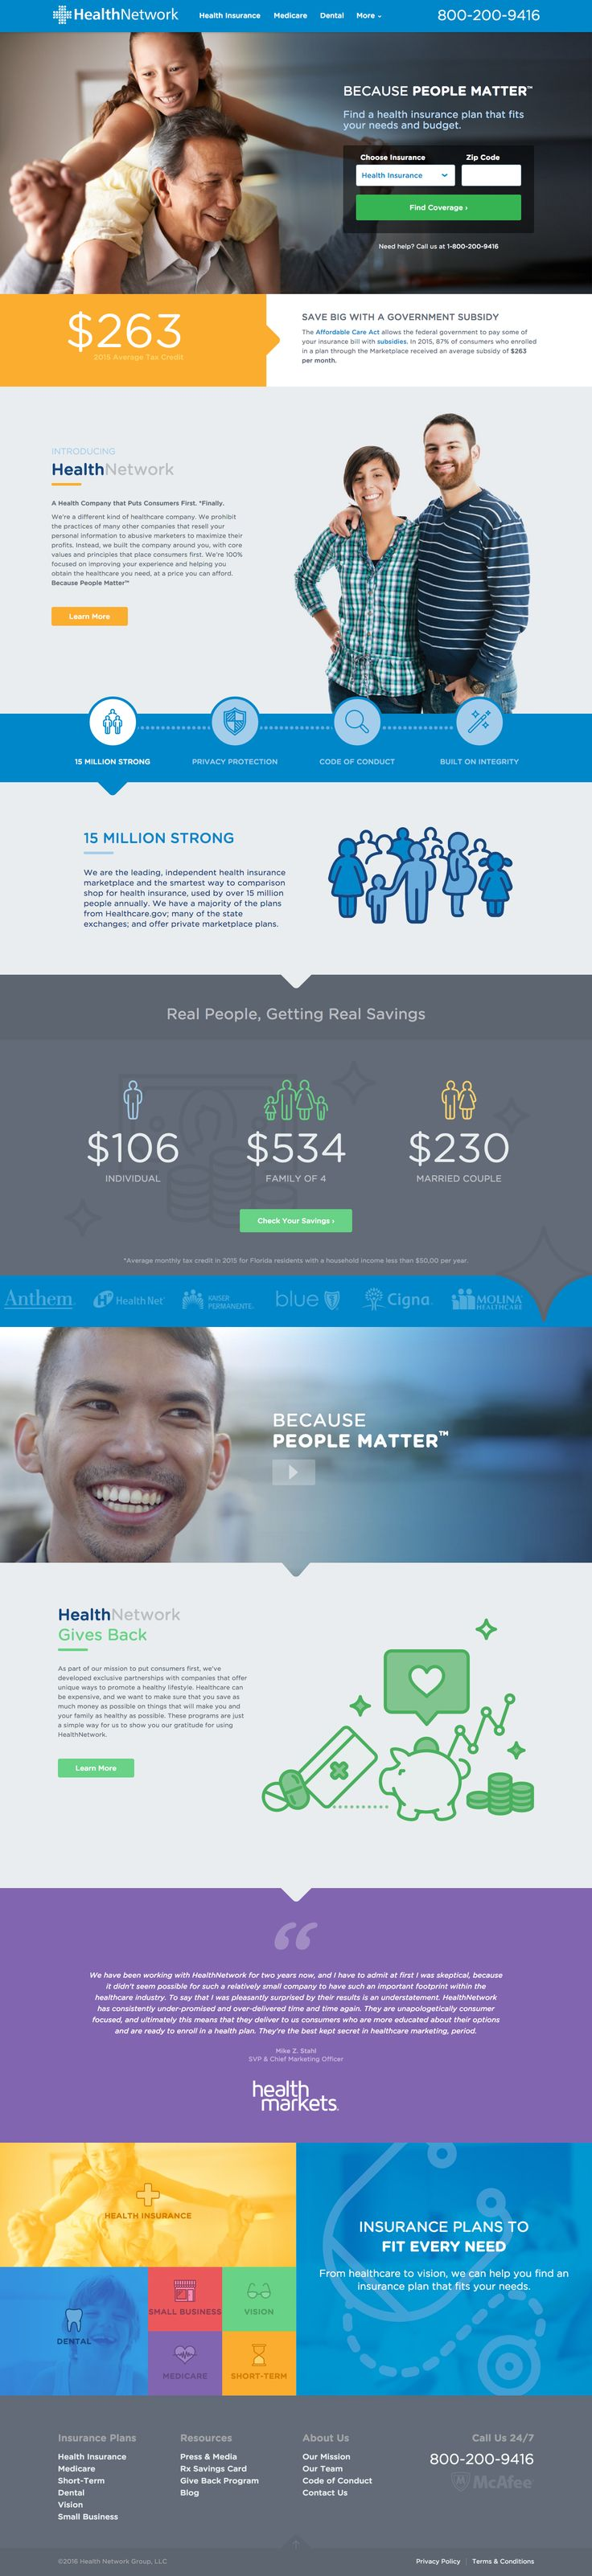 Independent Health Insurance Marketplace, Helping More Than 15 Million Annually - HealthNetwork